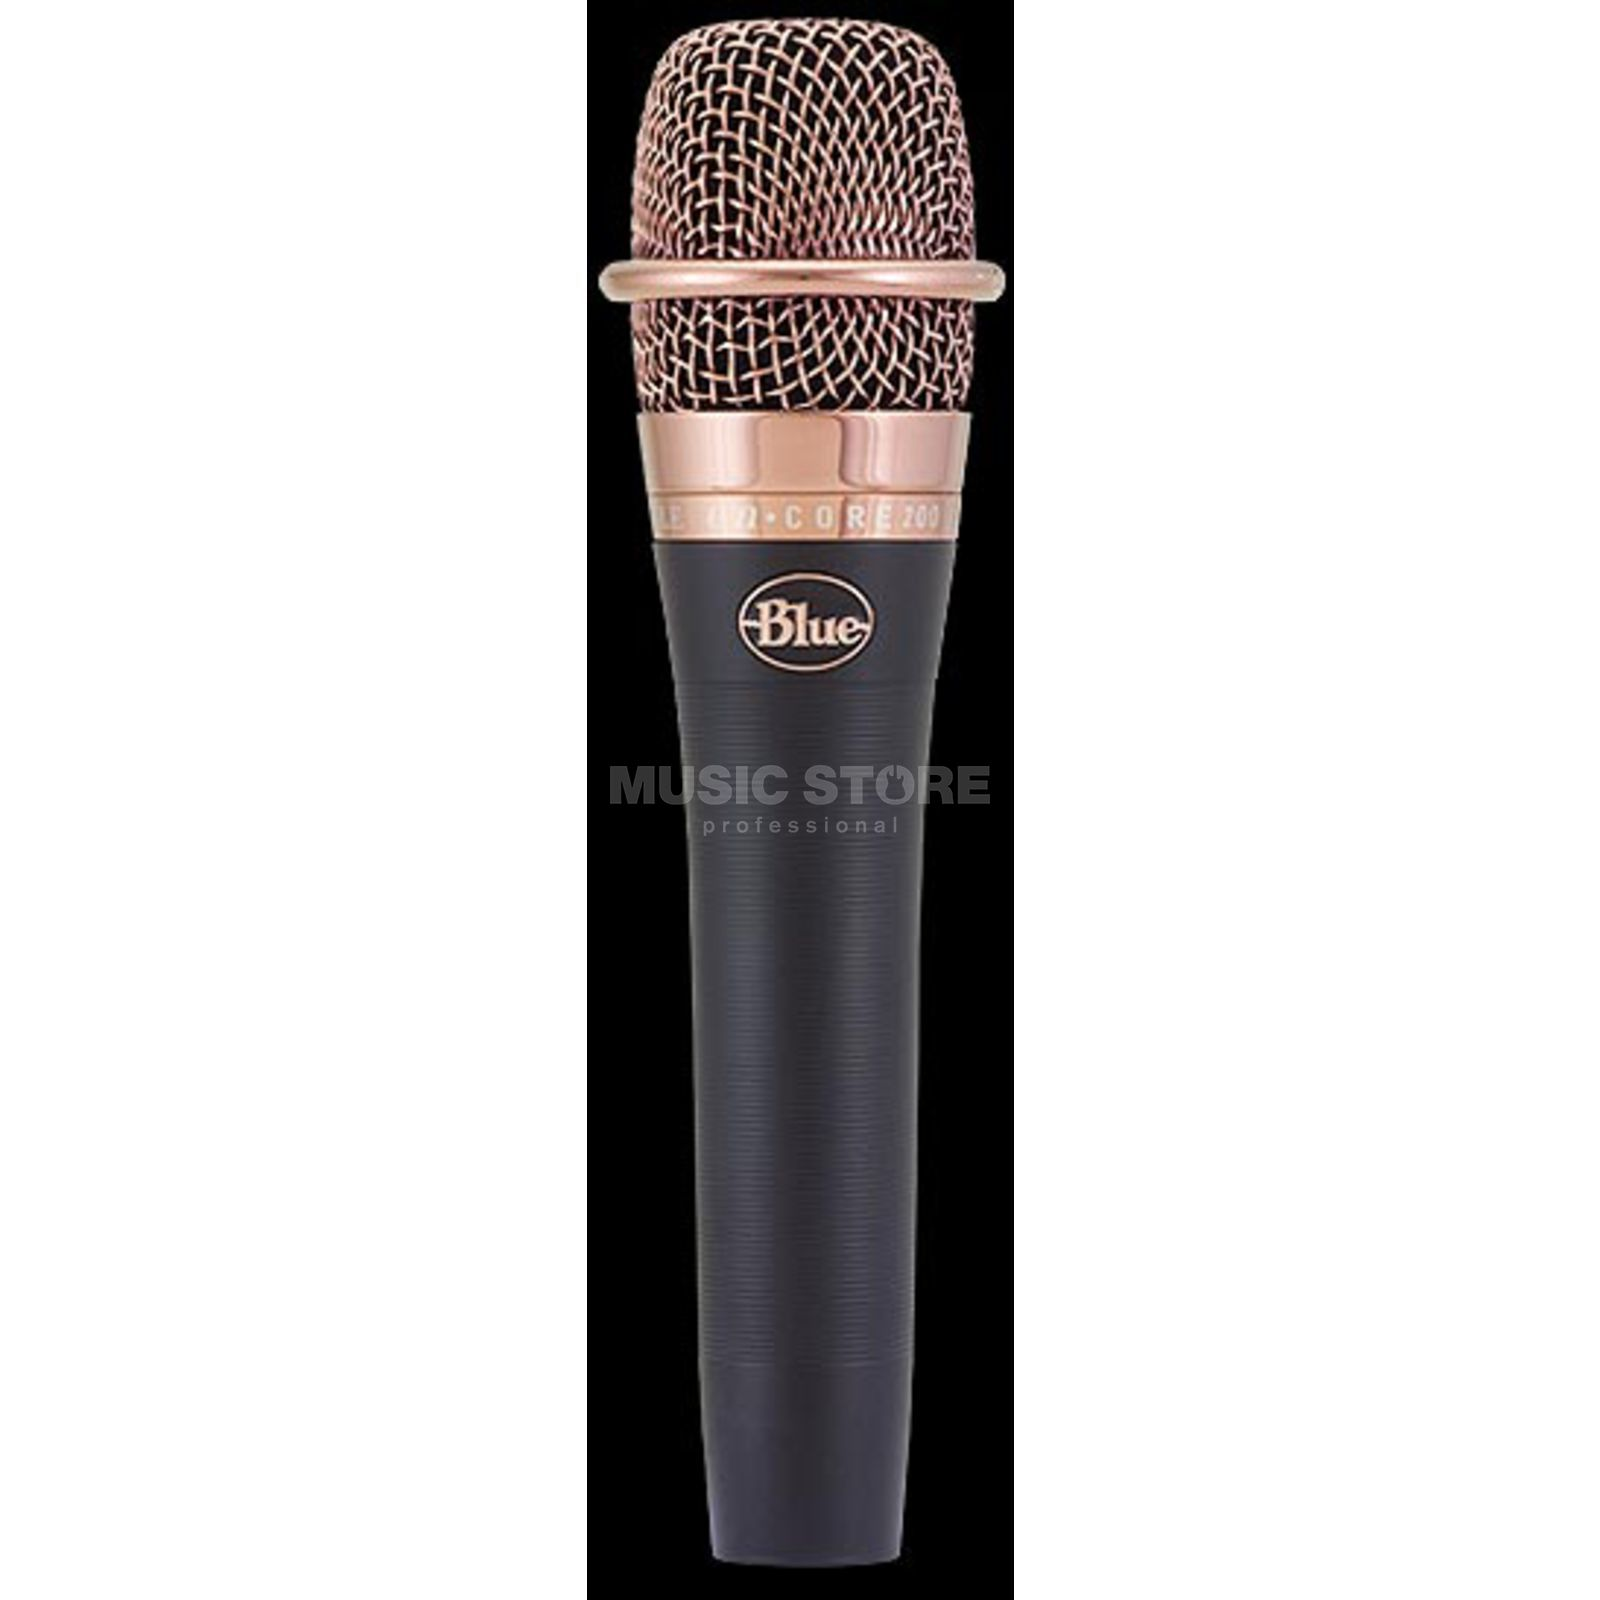 Blue Microphones enCORE 200 PH Powered Dynamic Microphone Produktbillede